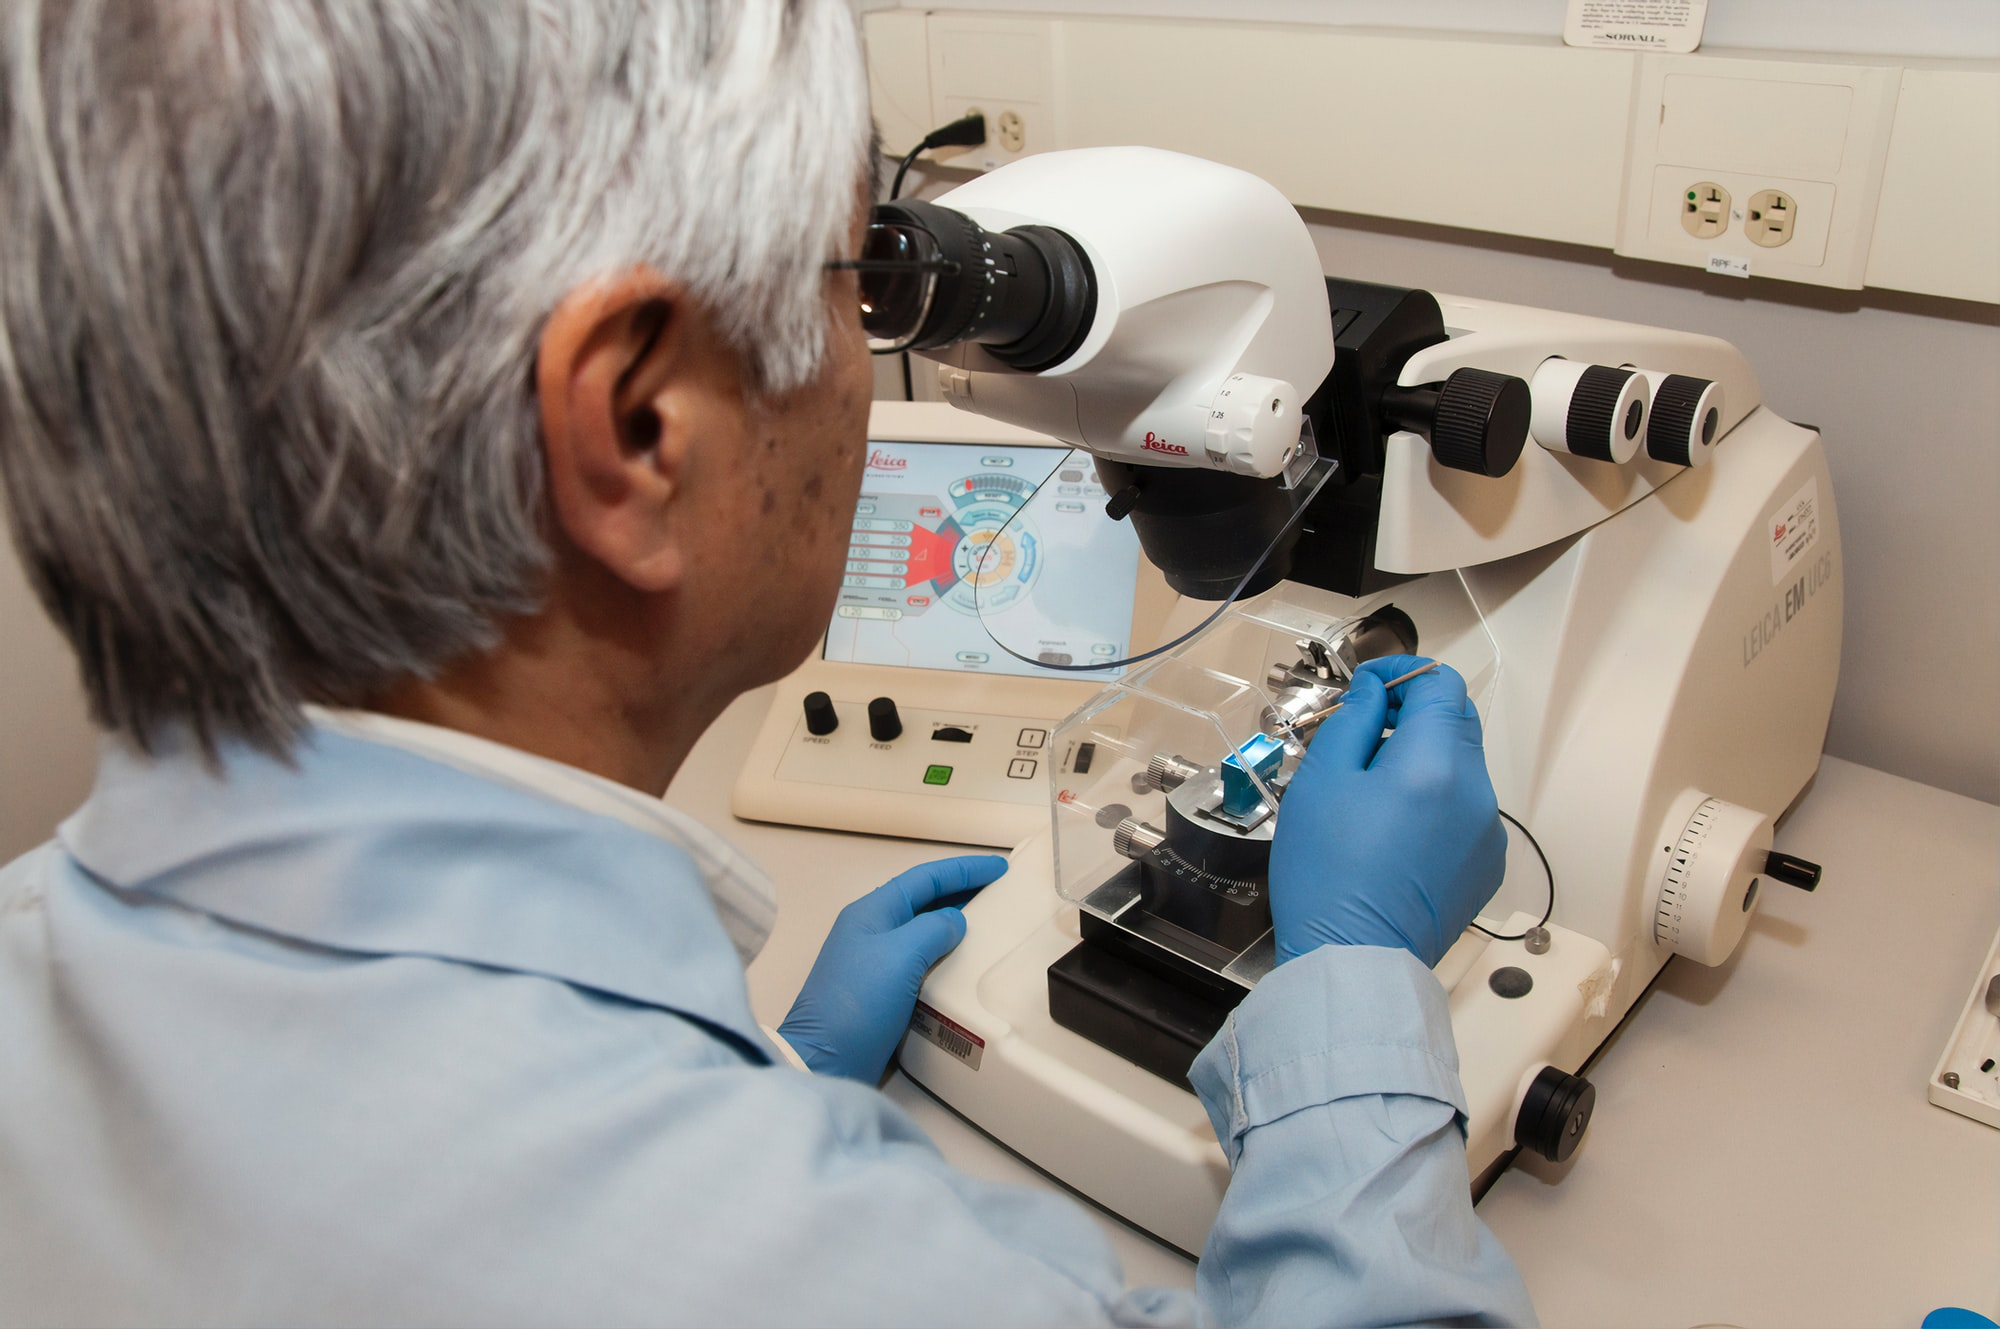 A technician using a microtome at the Advanced Technology Research Facility (ATRF), Frederick National Laboratory for Cancer Research, National Cancer Institute. A microtome is an instrument that cuts extremely thin sections of material for examination under a microscope.